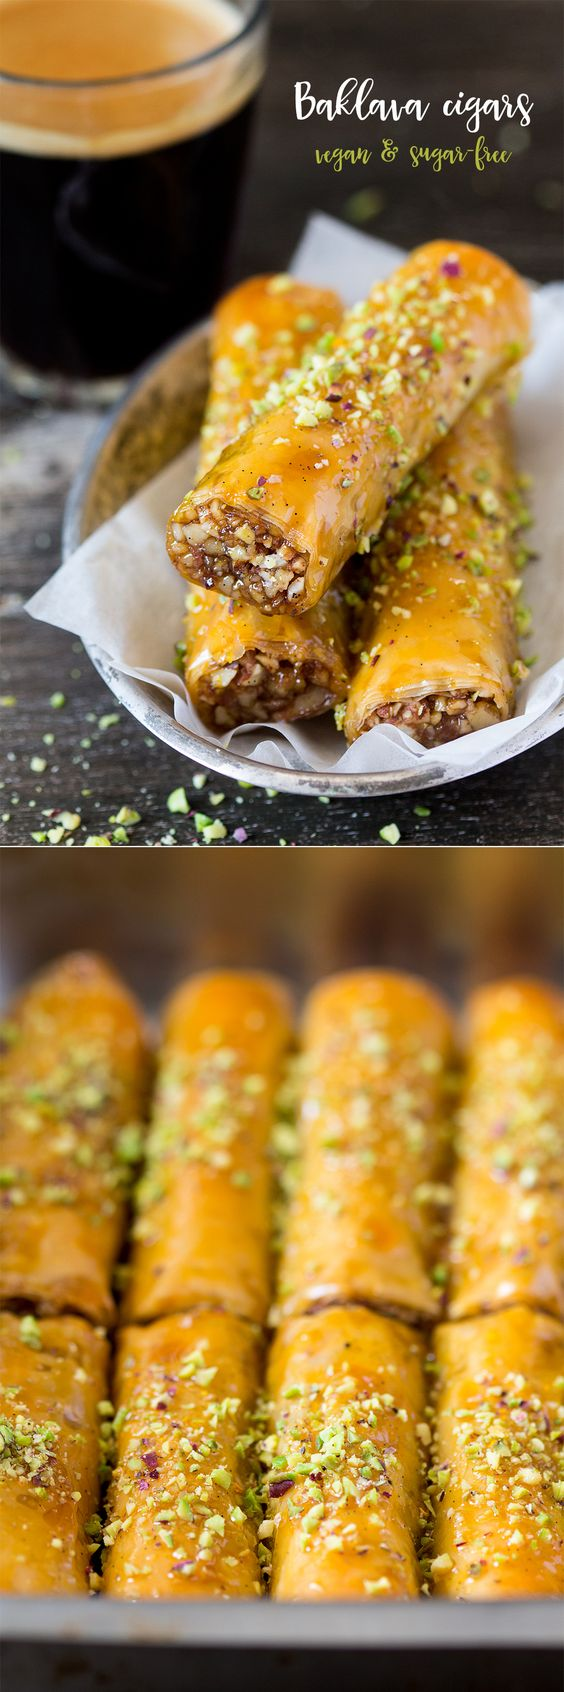 Vegan Baklava Cigars // oranges, maple syrup, vanilla pod, almonds, walnuts, lemon zest, ground cinnamon, sea salt, vegan filo pastry, vegetable oil, pistachios